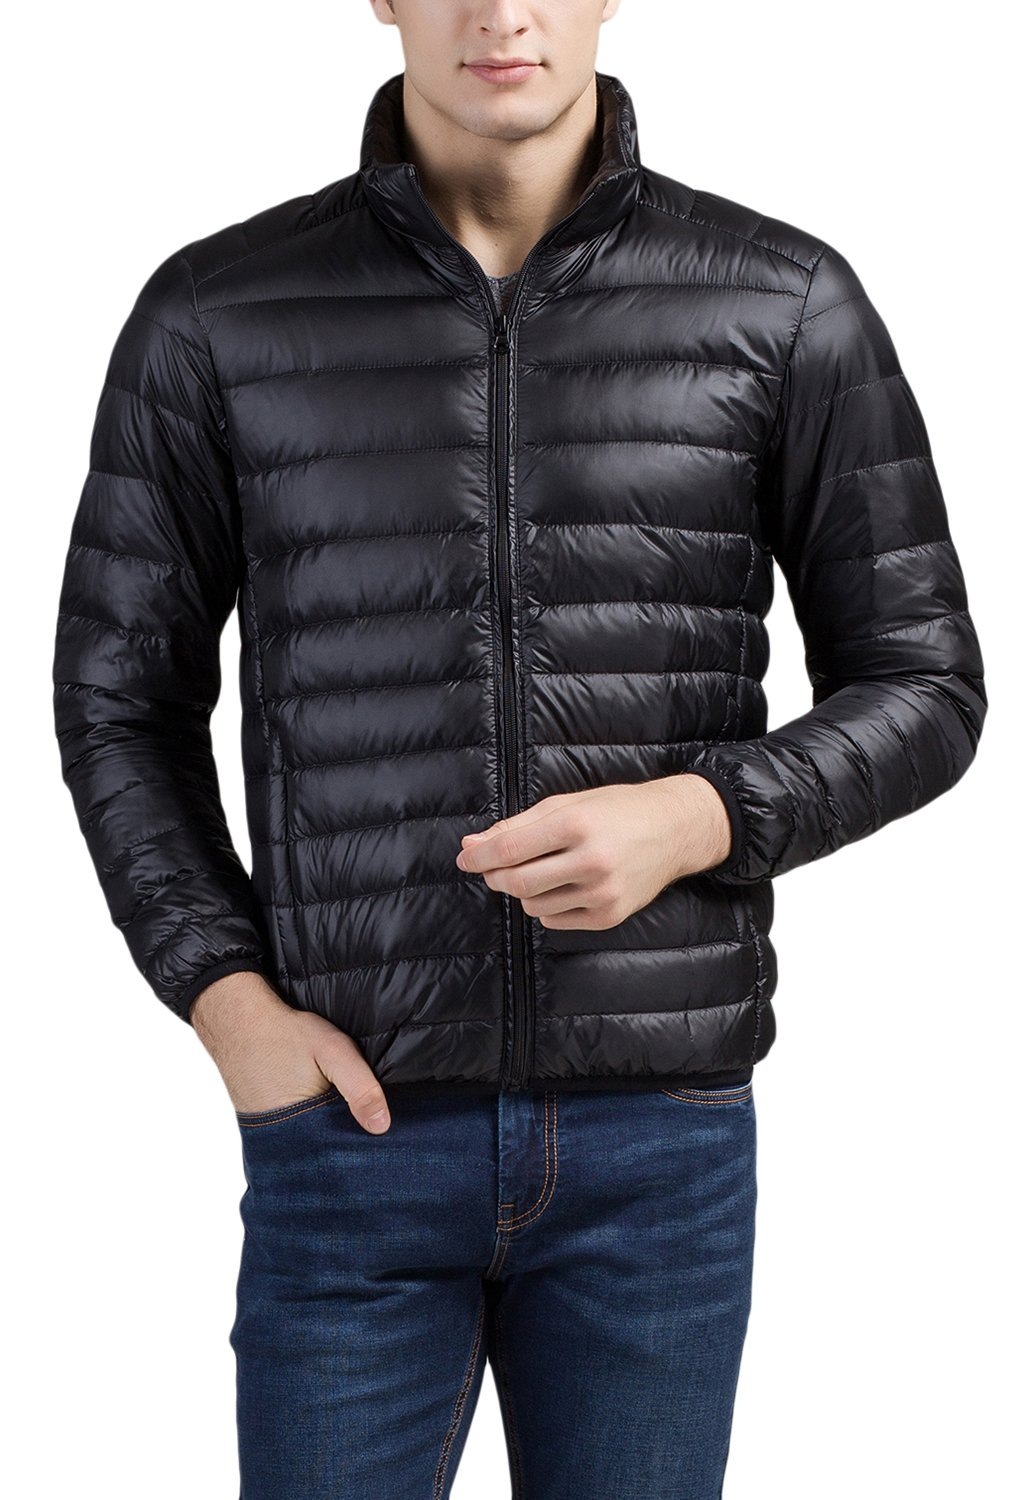 Cheering Men's Packable Down Jacket Weatherproof Winter Coat Black Large